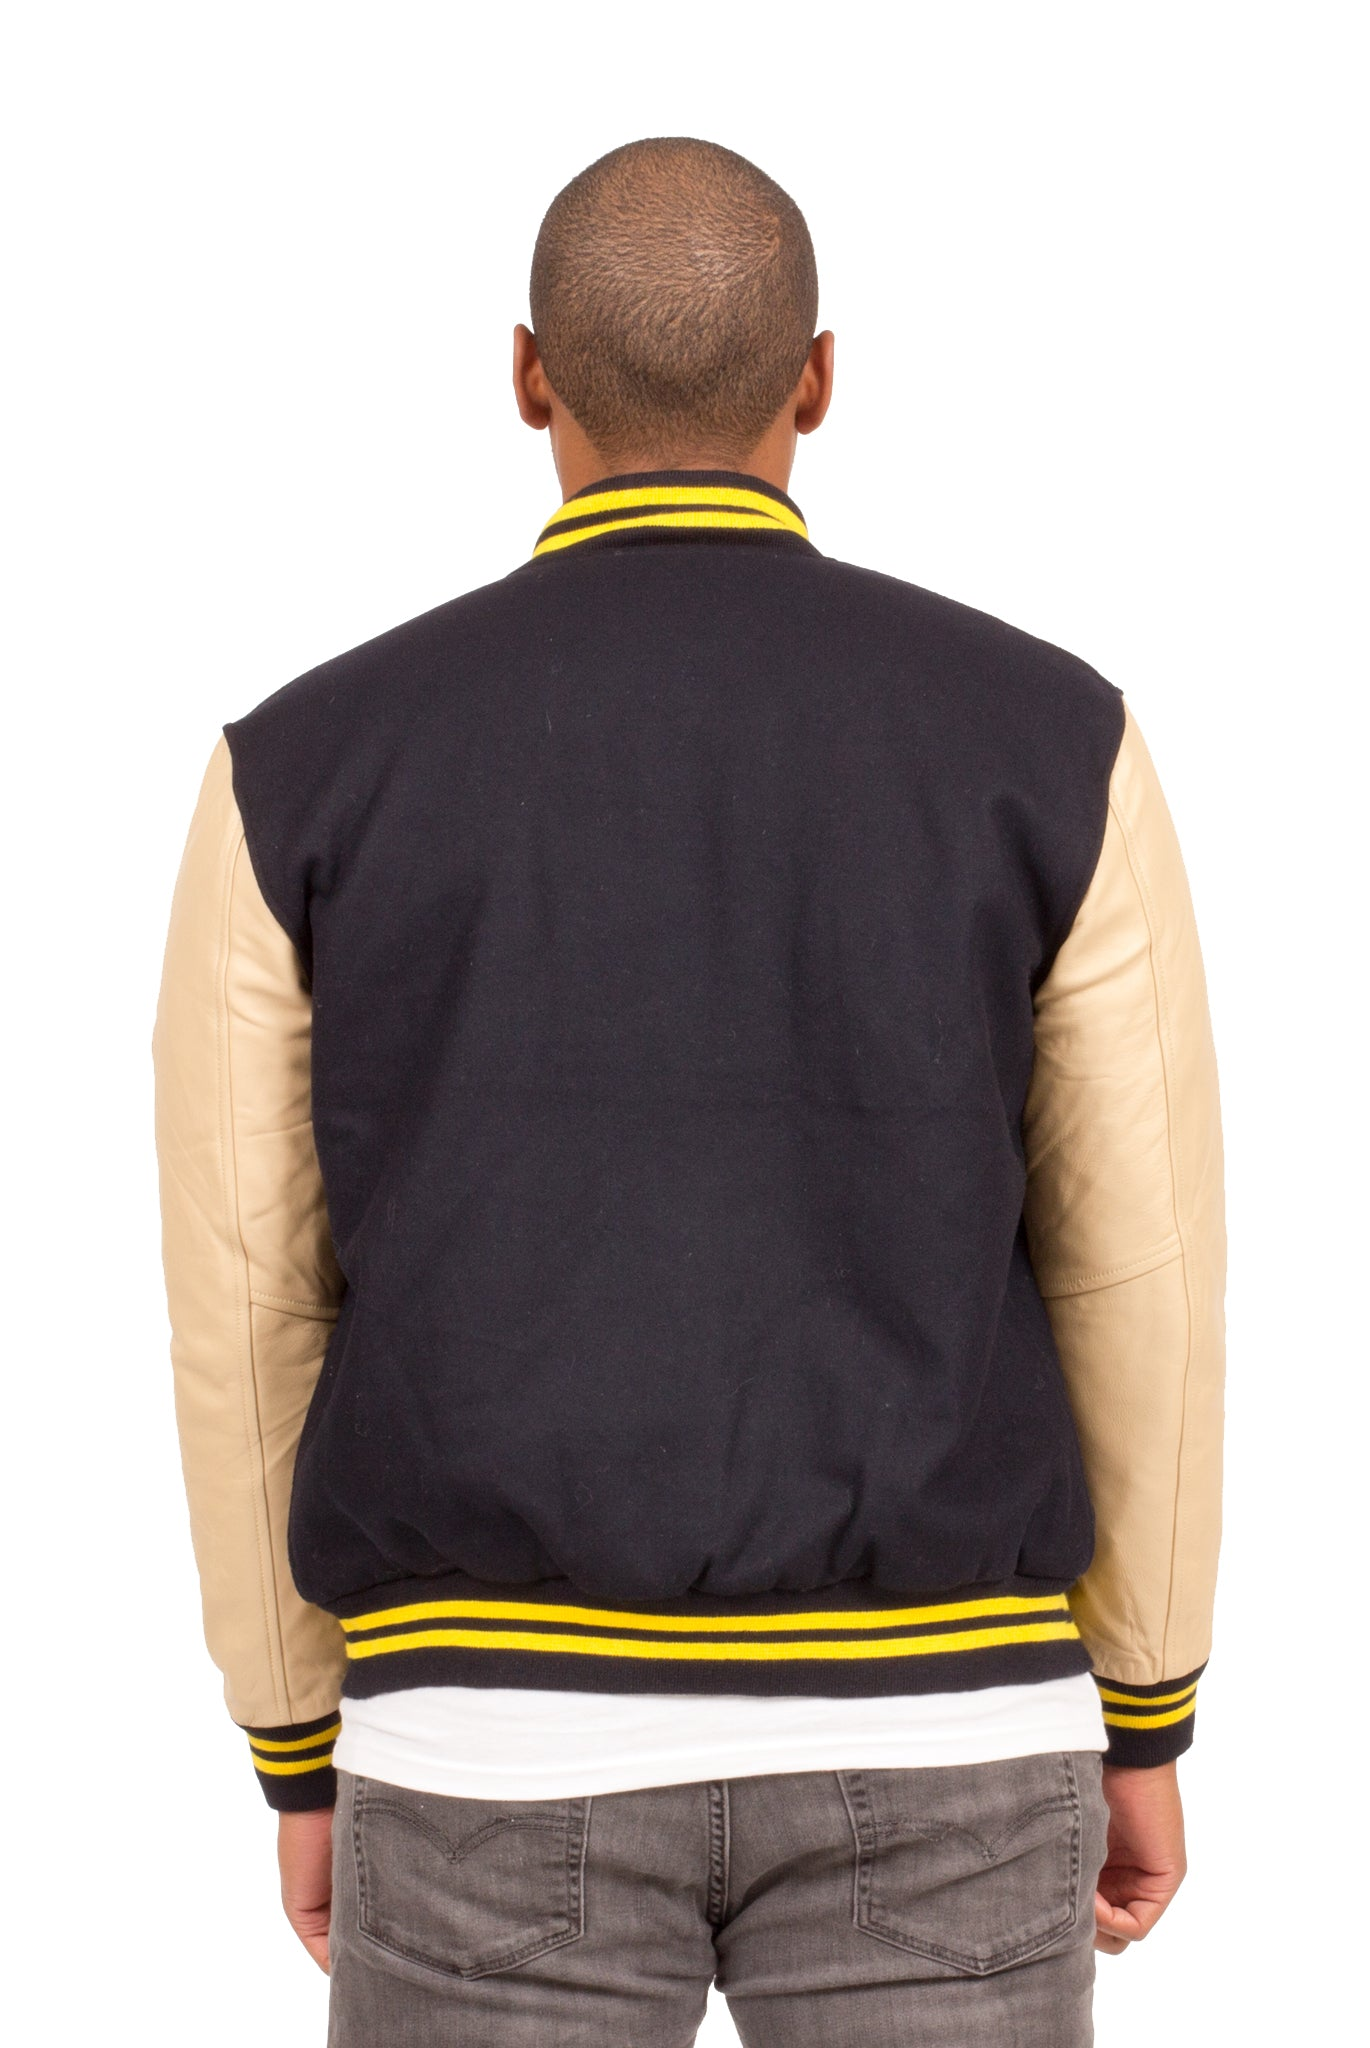 ALL CITY VARSITY JACKET IN NAVY BLUE | Poor Little Rich Boy Clothing